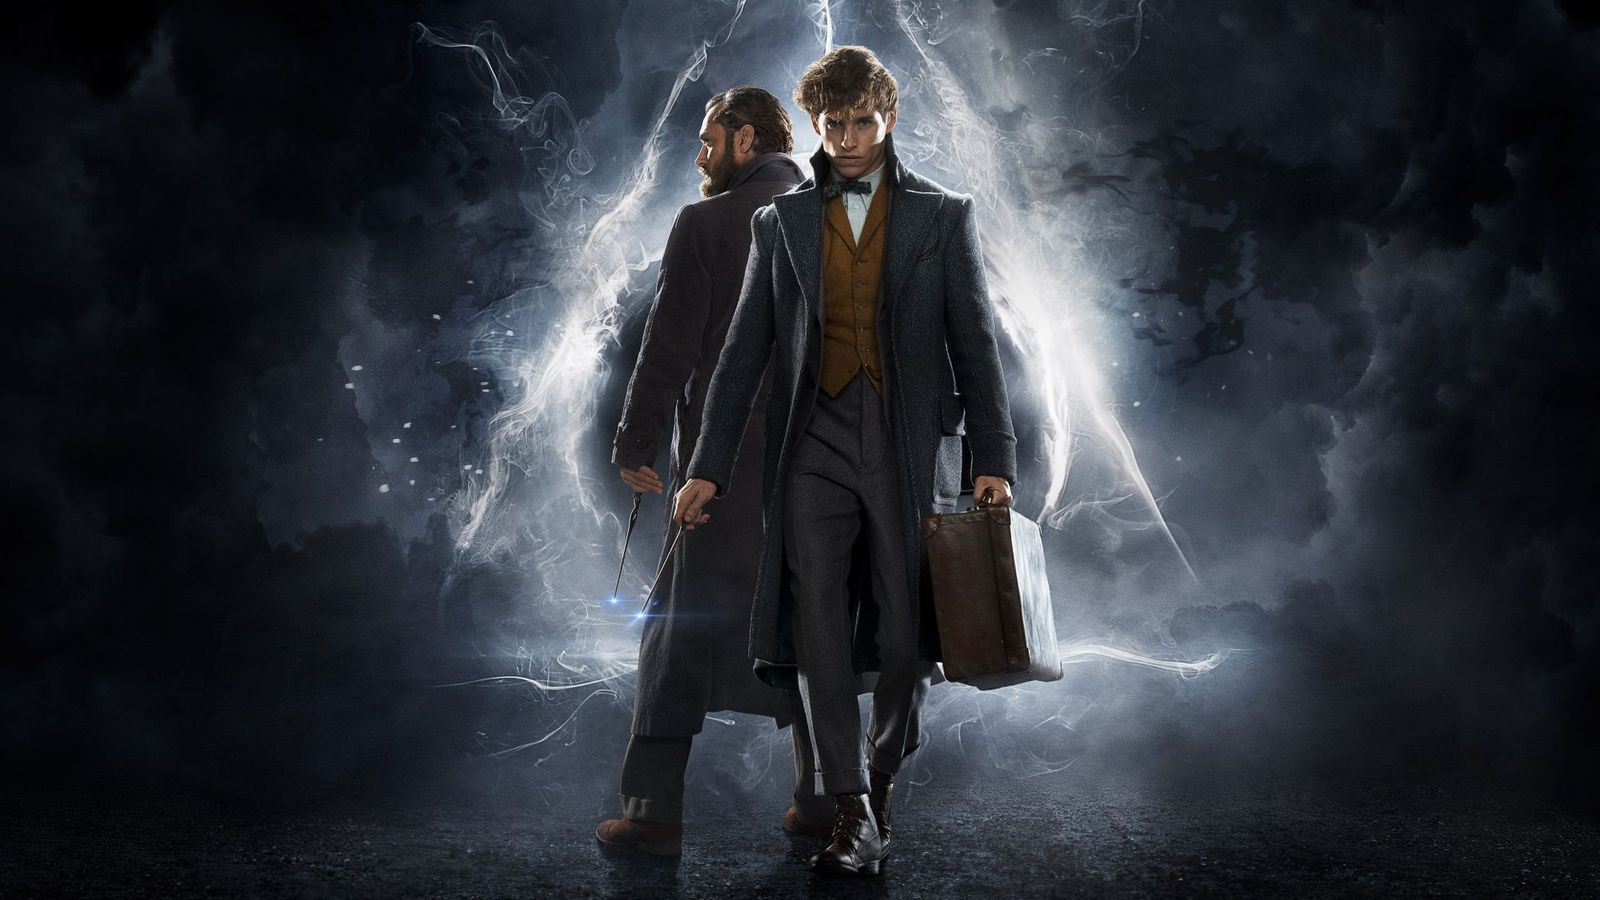 Fantastic Beasts Wallpapers 18 images   Wallpaper Stream 1600x900